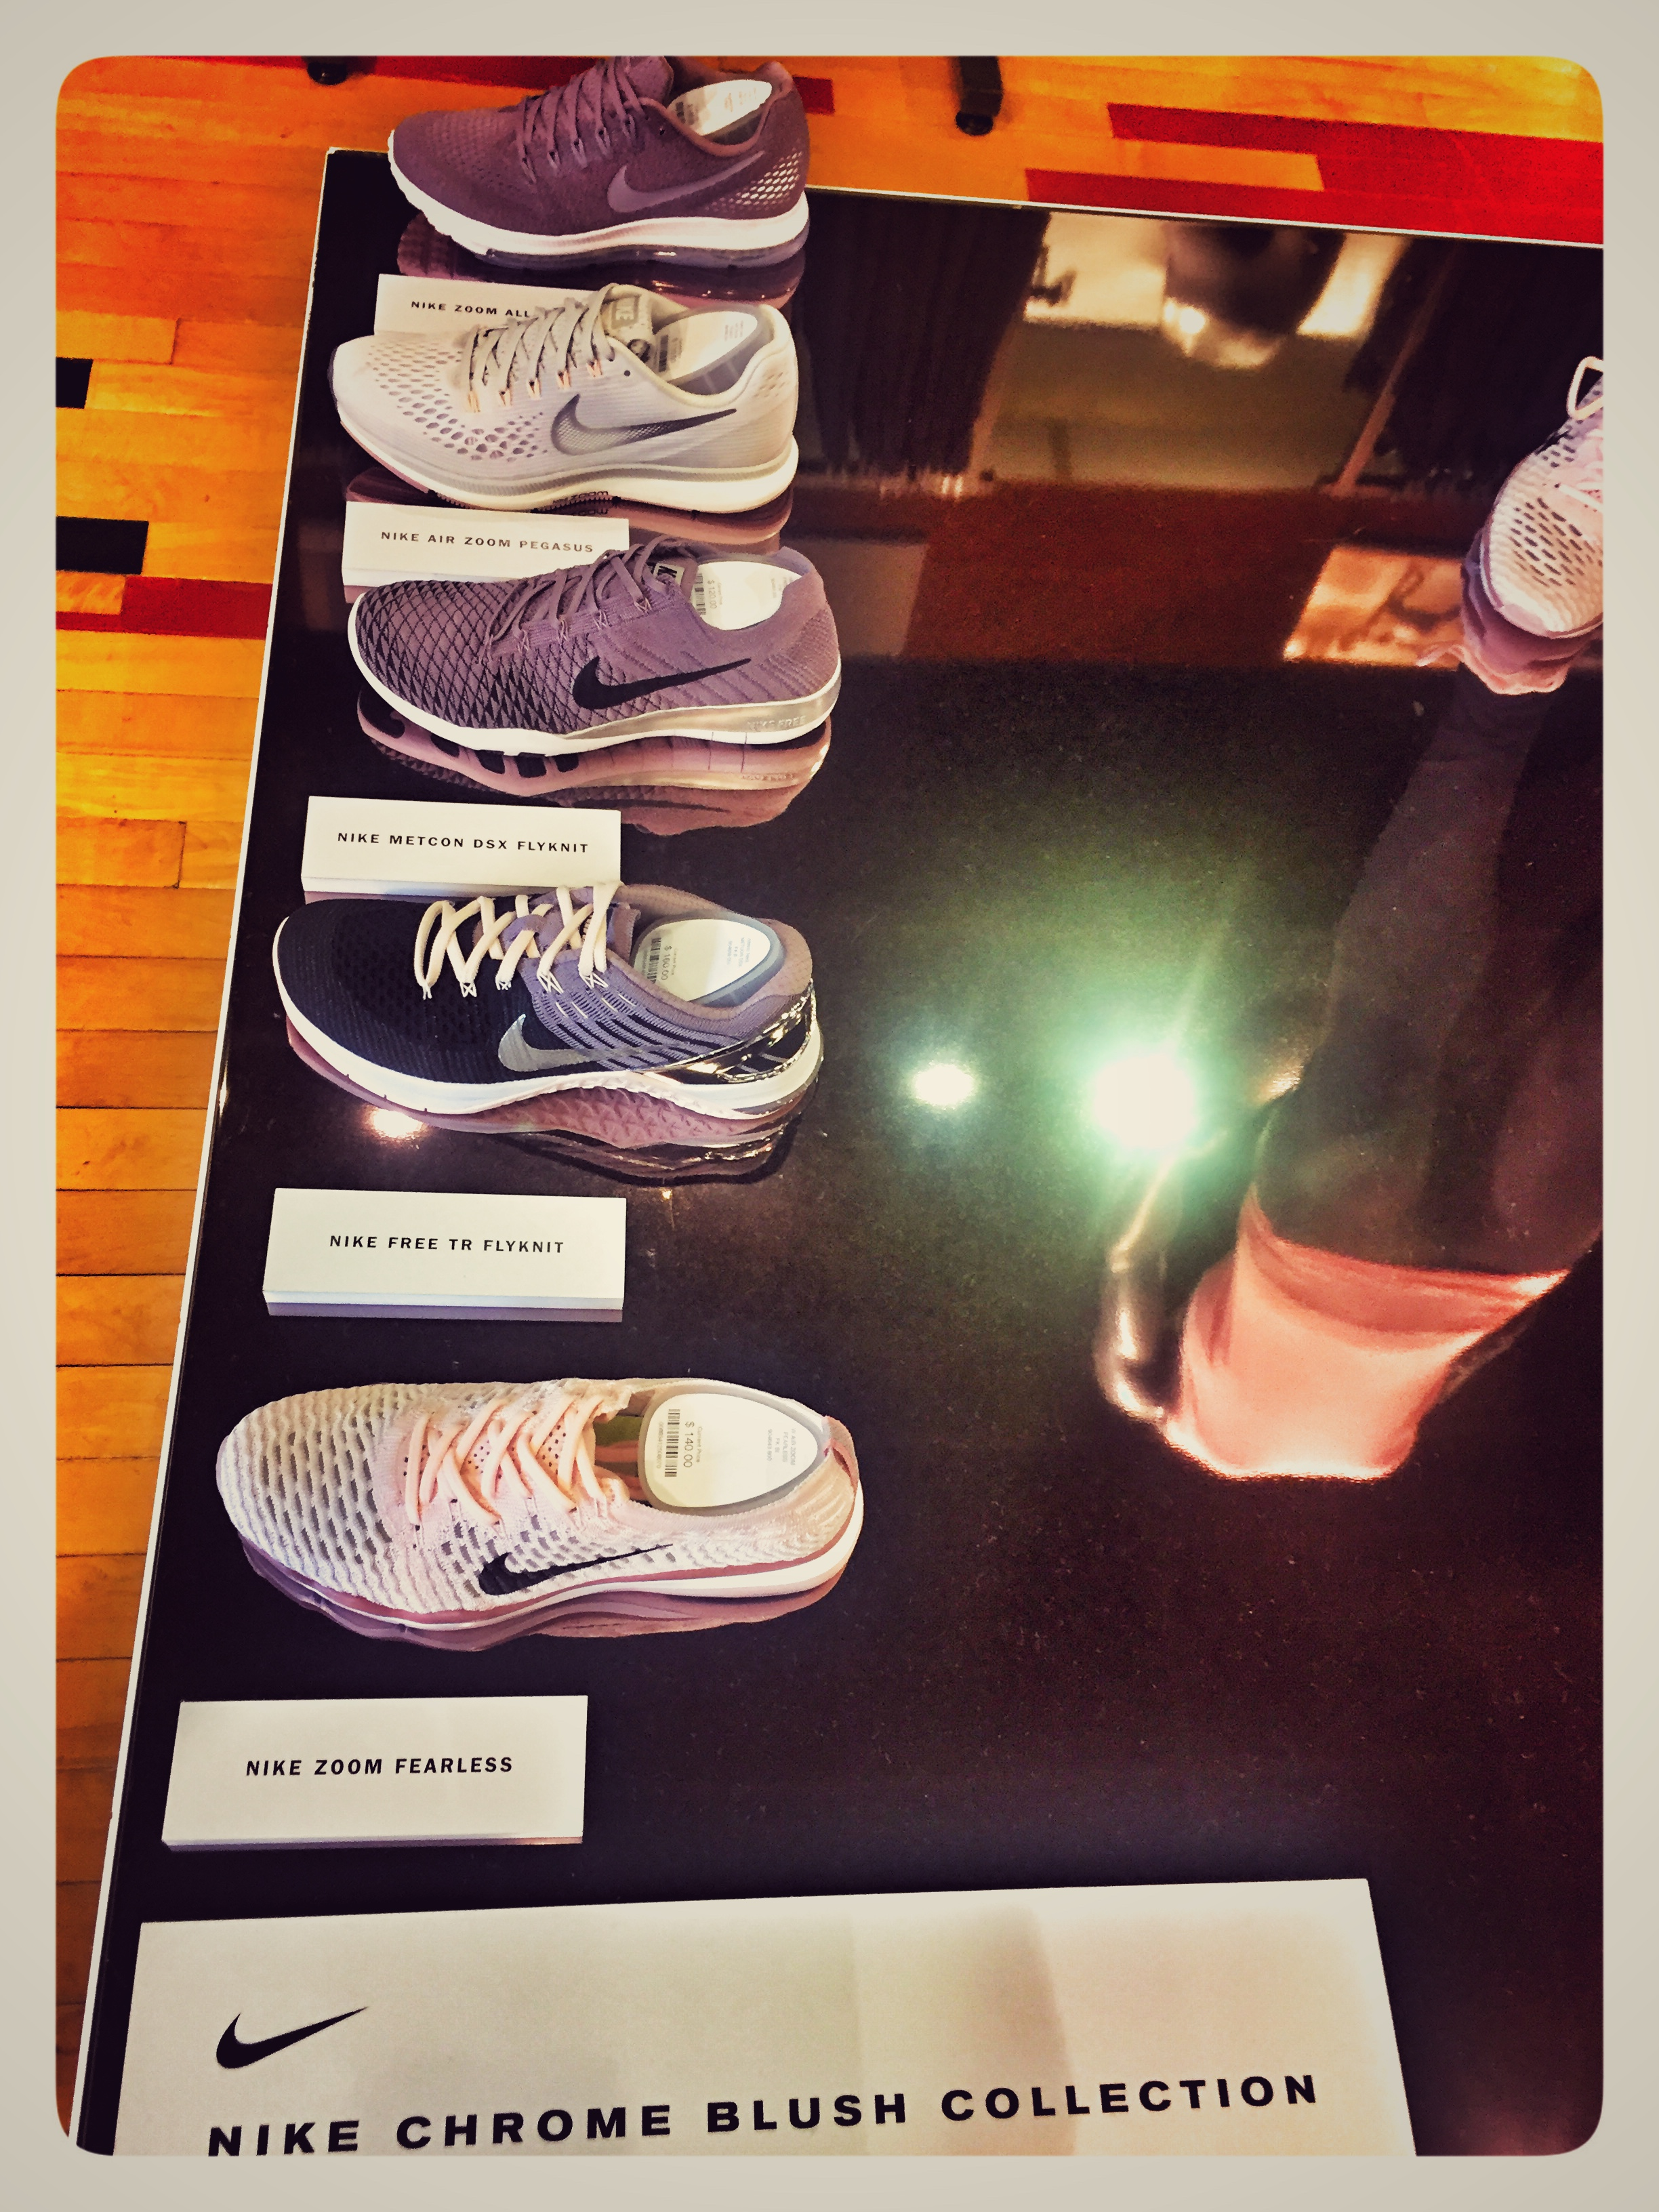 New Nike Chrome Blush Collection